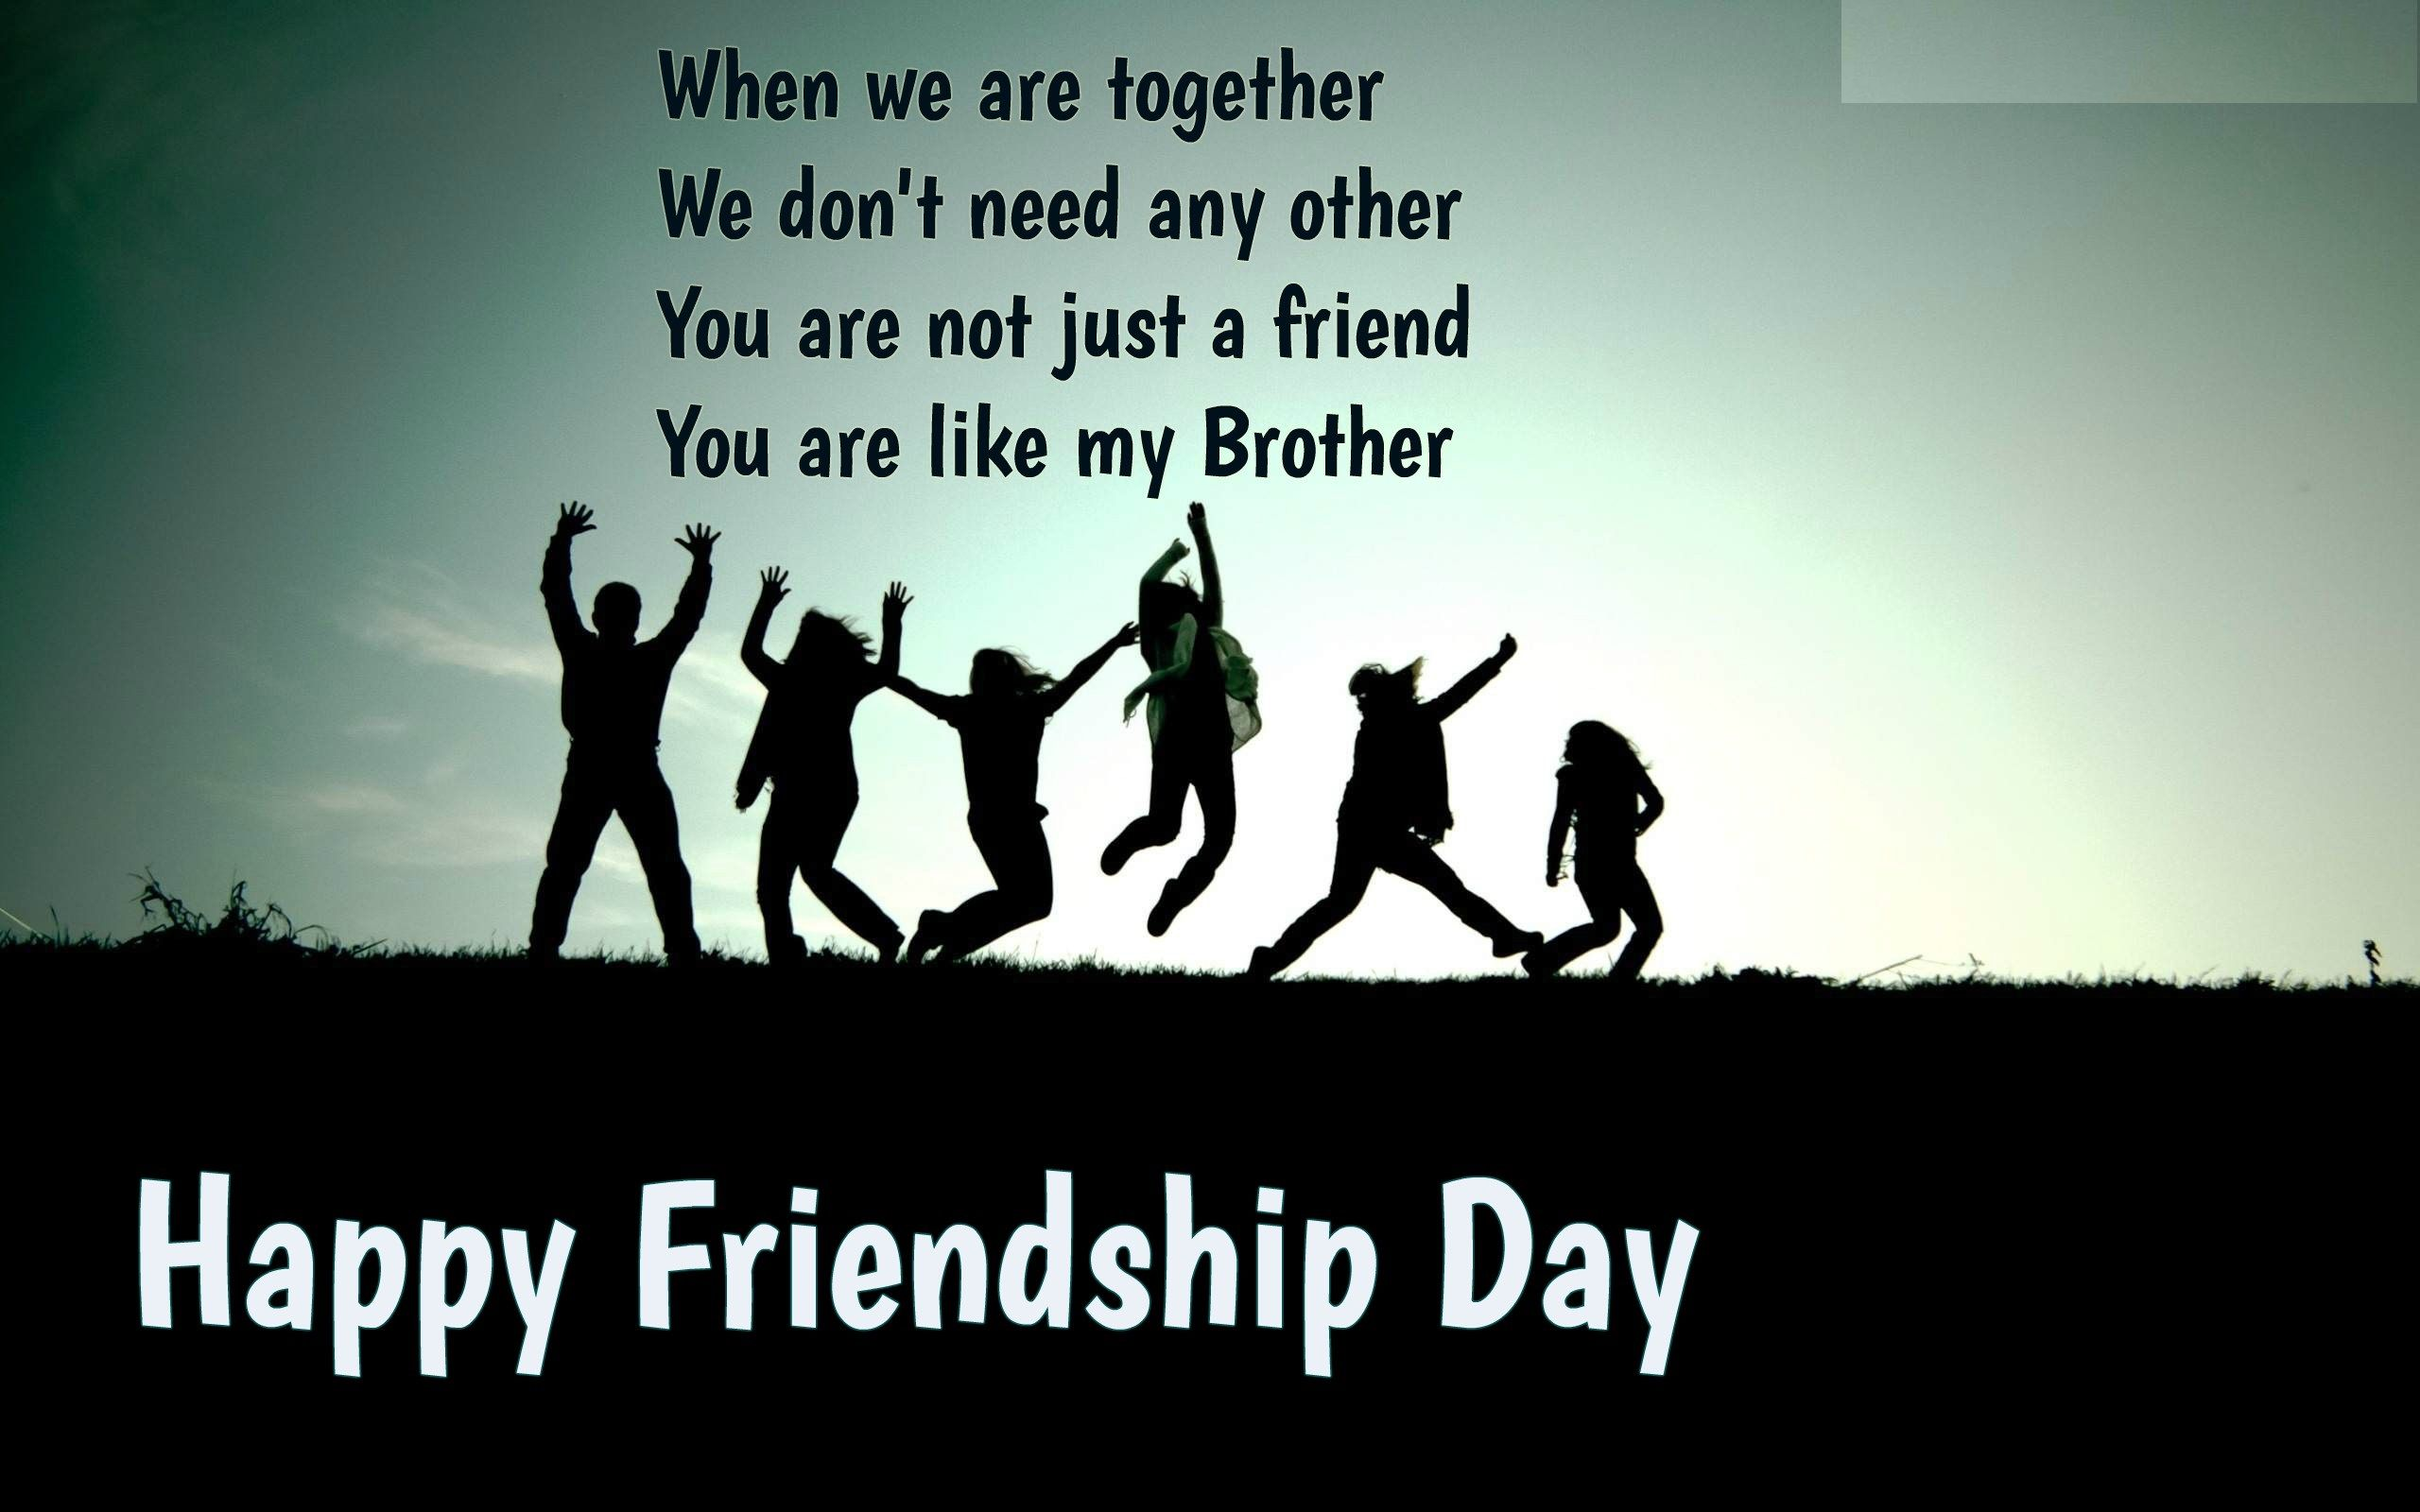 International Friendship Day Quotes Pictures Friendship Day Quotes Happy Friendship Day Quotes Friendship Quotes In Hindi